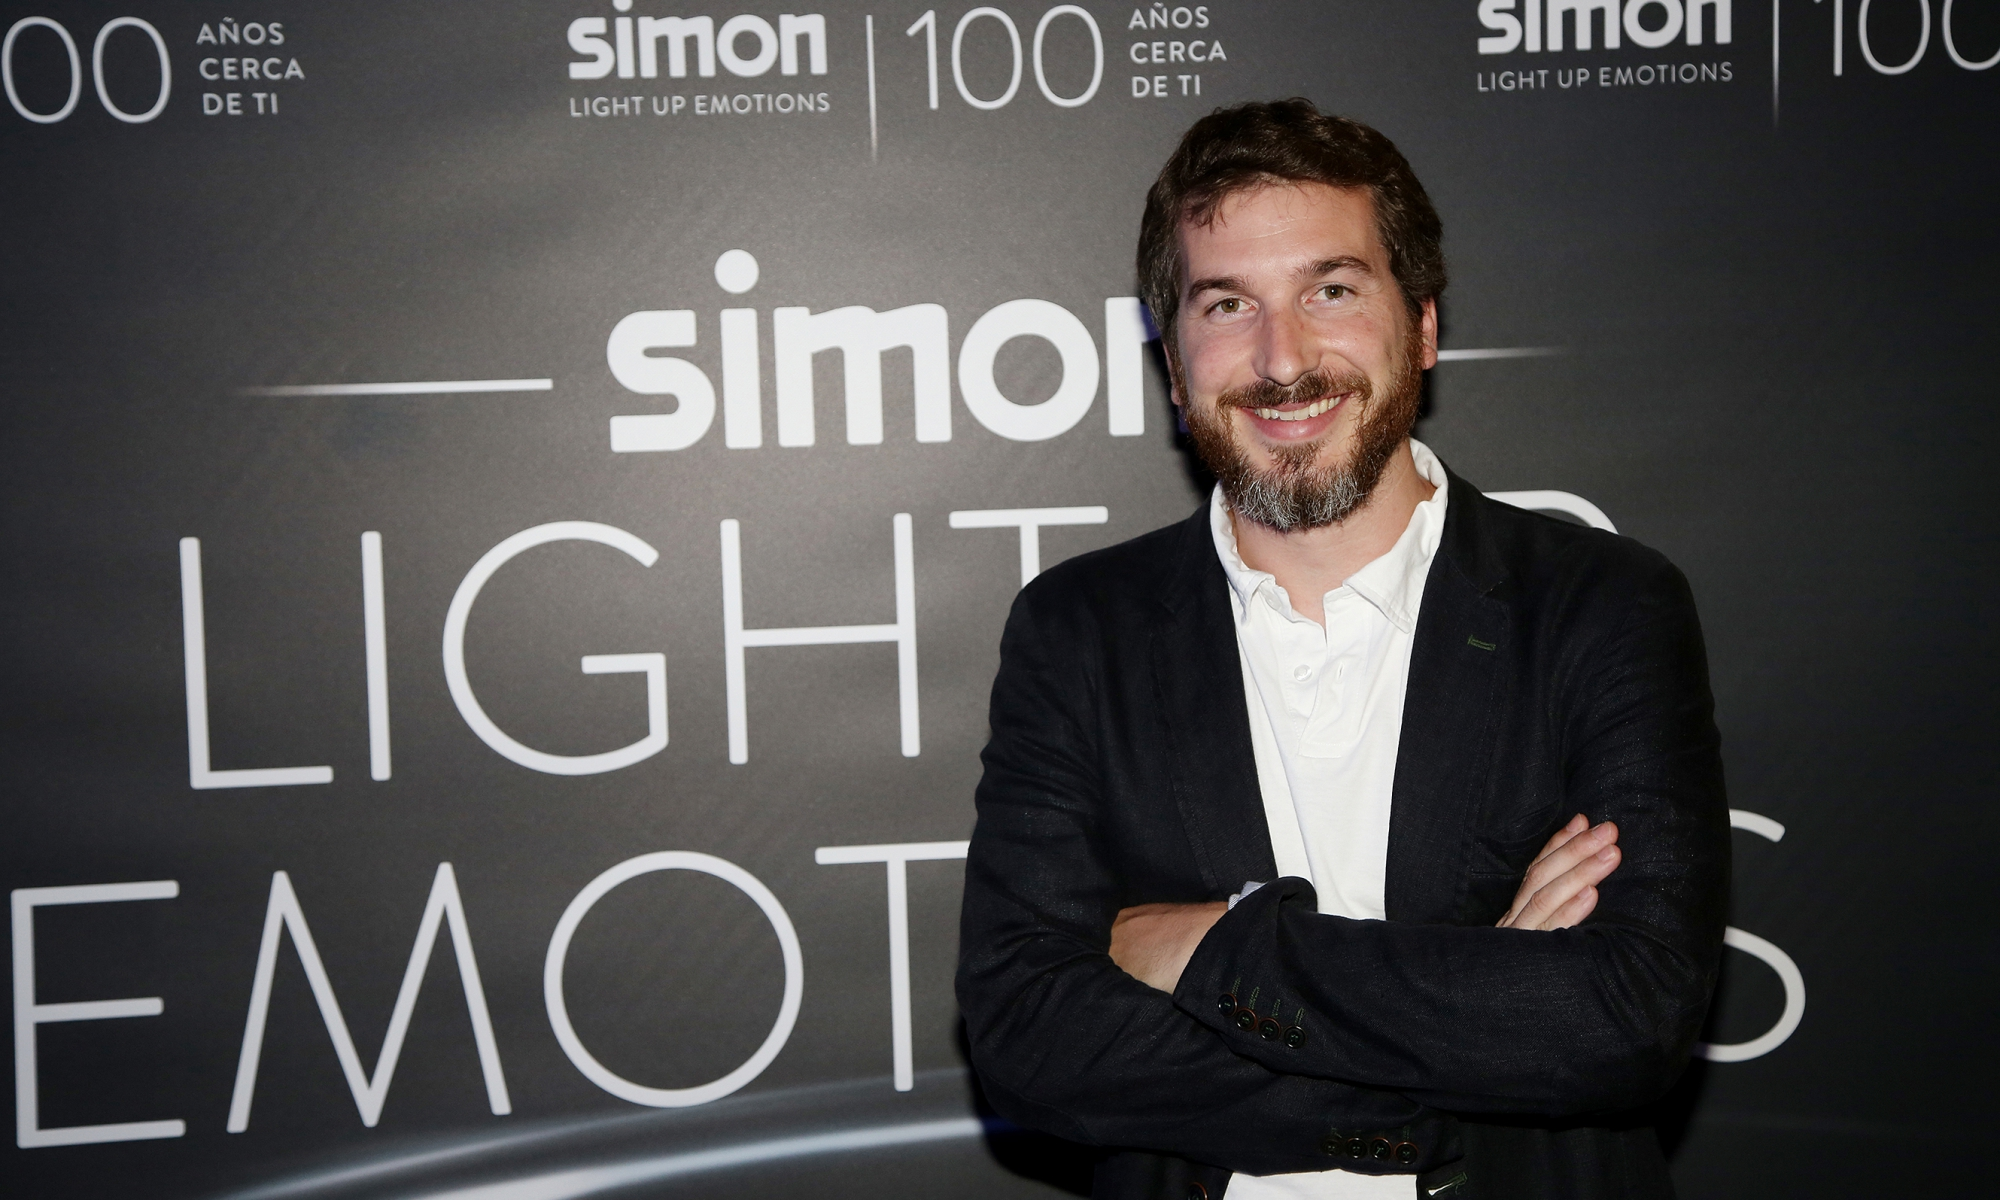 Alfred Batet, responsable de negocio digital SIMON